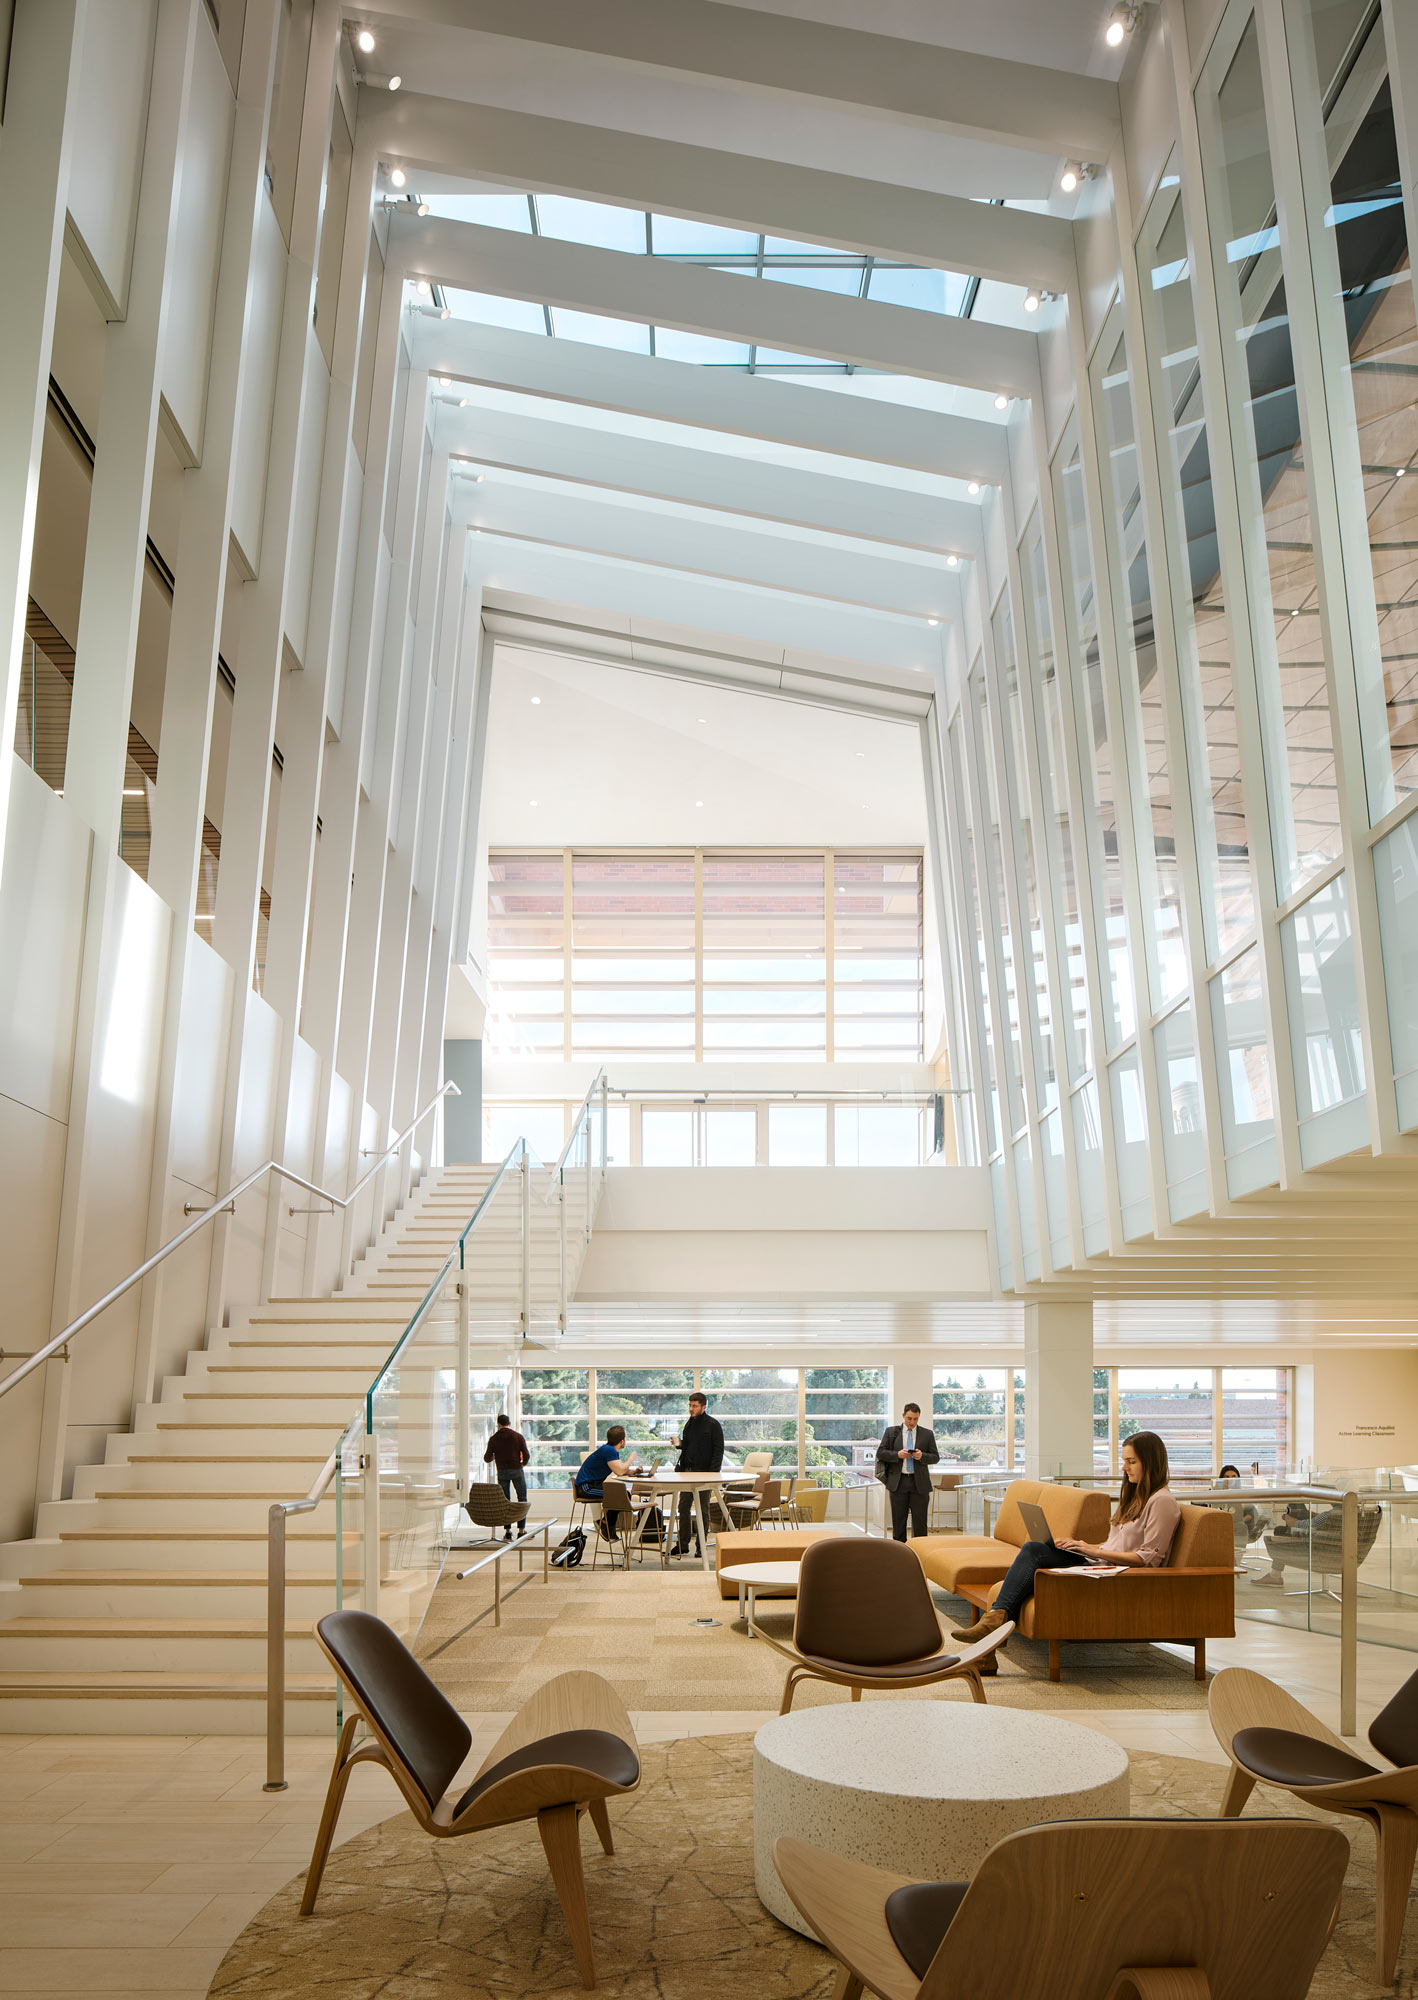 People sitting, working, and studying on furniture in the atrium of an academic building.